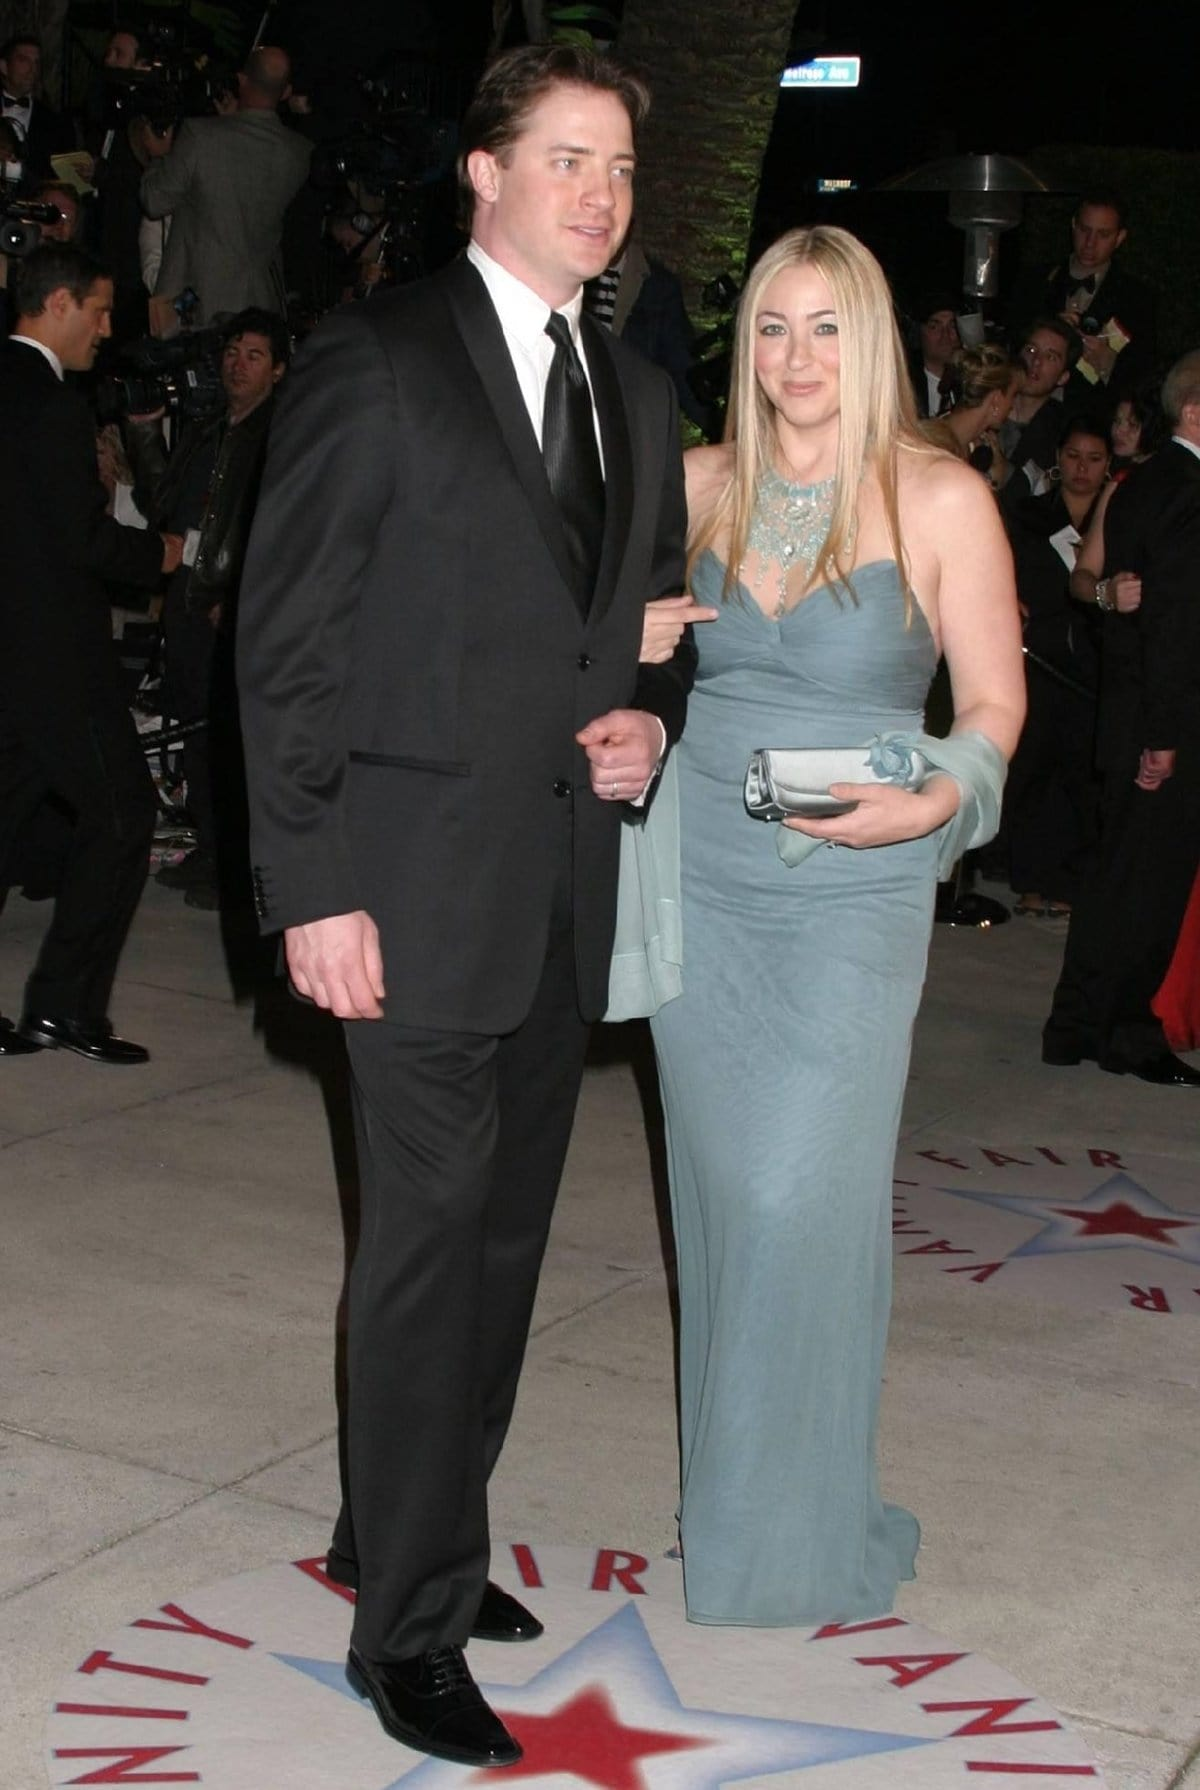 Pictured at the 2005 Vanity Fair Oscar Party, Brendan Fraser and Afton Smith filed for divorce in 2007